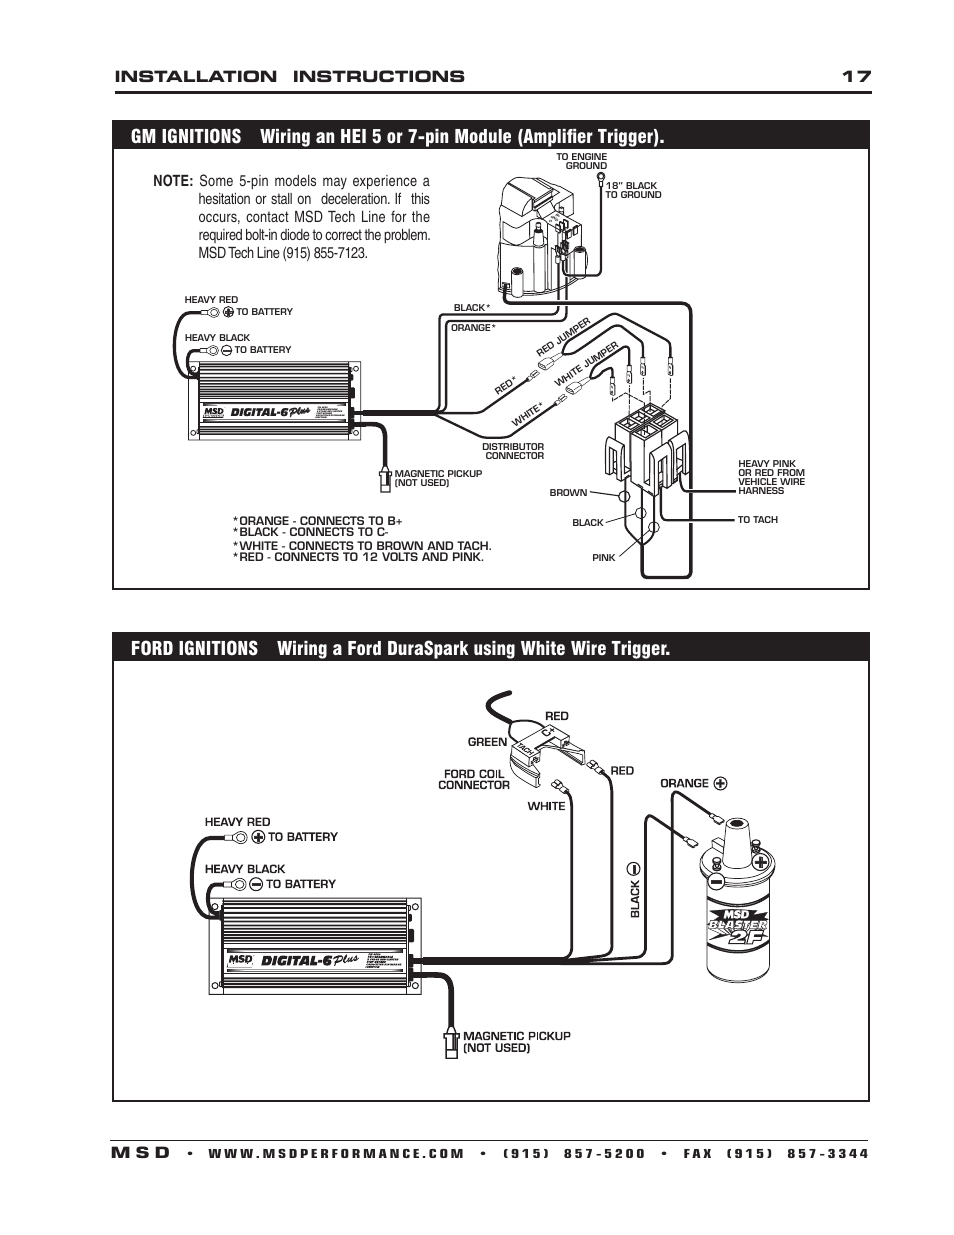 hight resolution of installation instructions 17 m s d msd 6520 digital 6 plus ignition control installation user manual